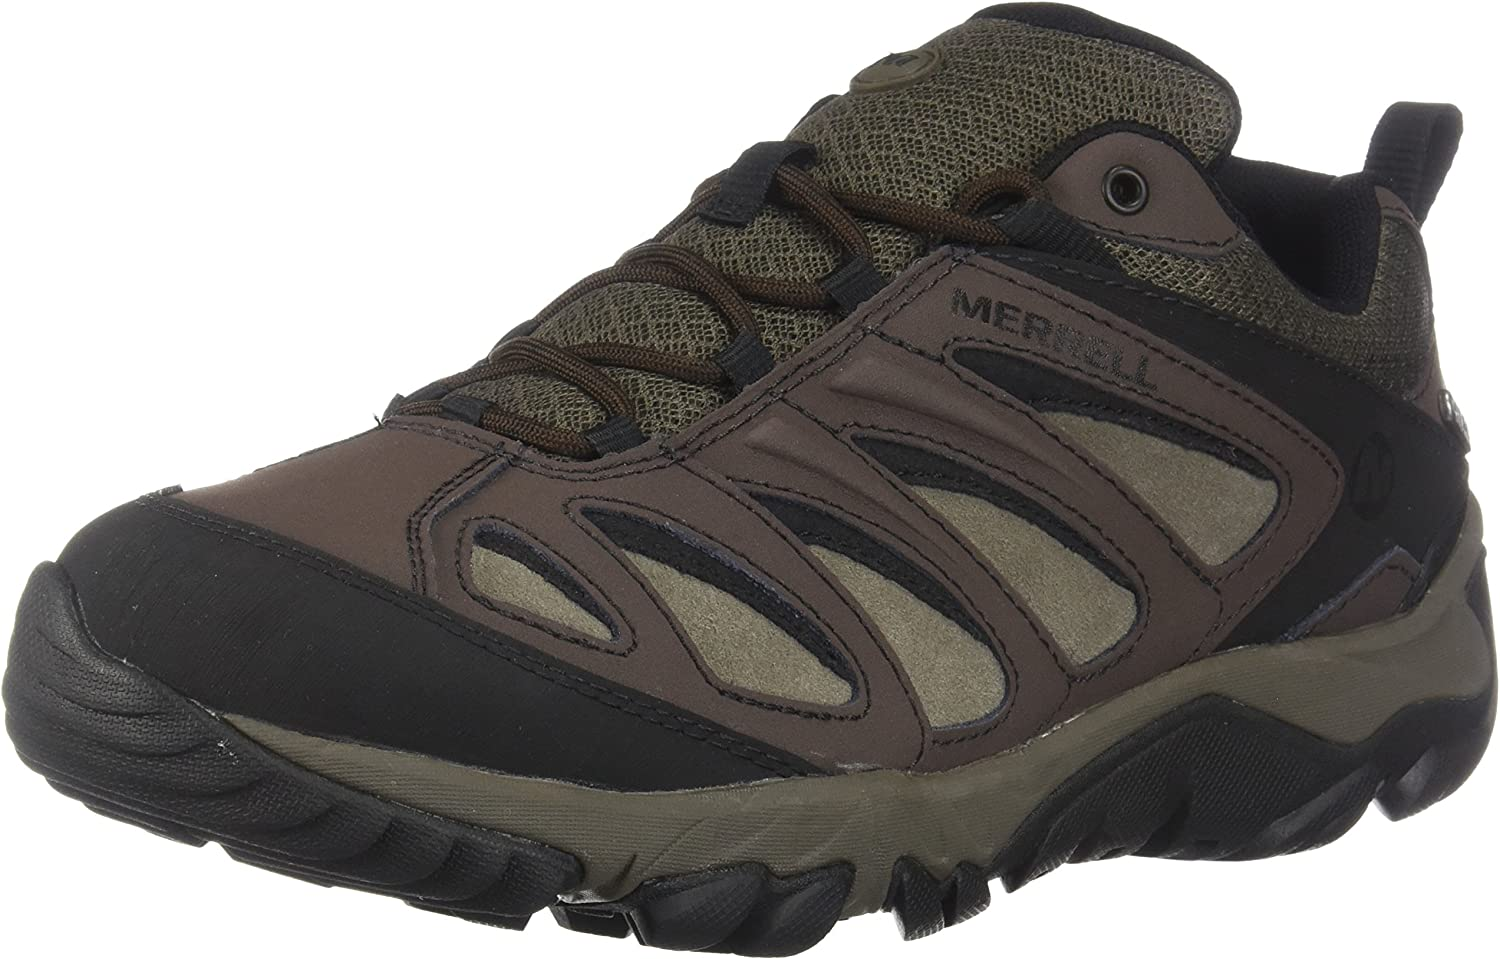 Merrell Men's Outpulse LTR Waterproof Hiking shoes